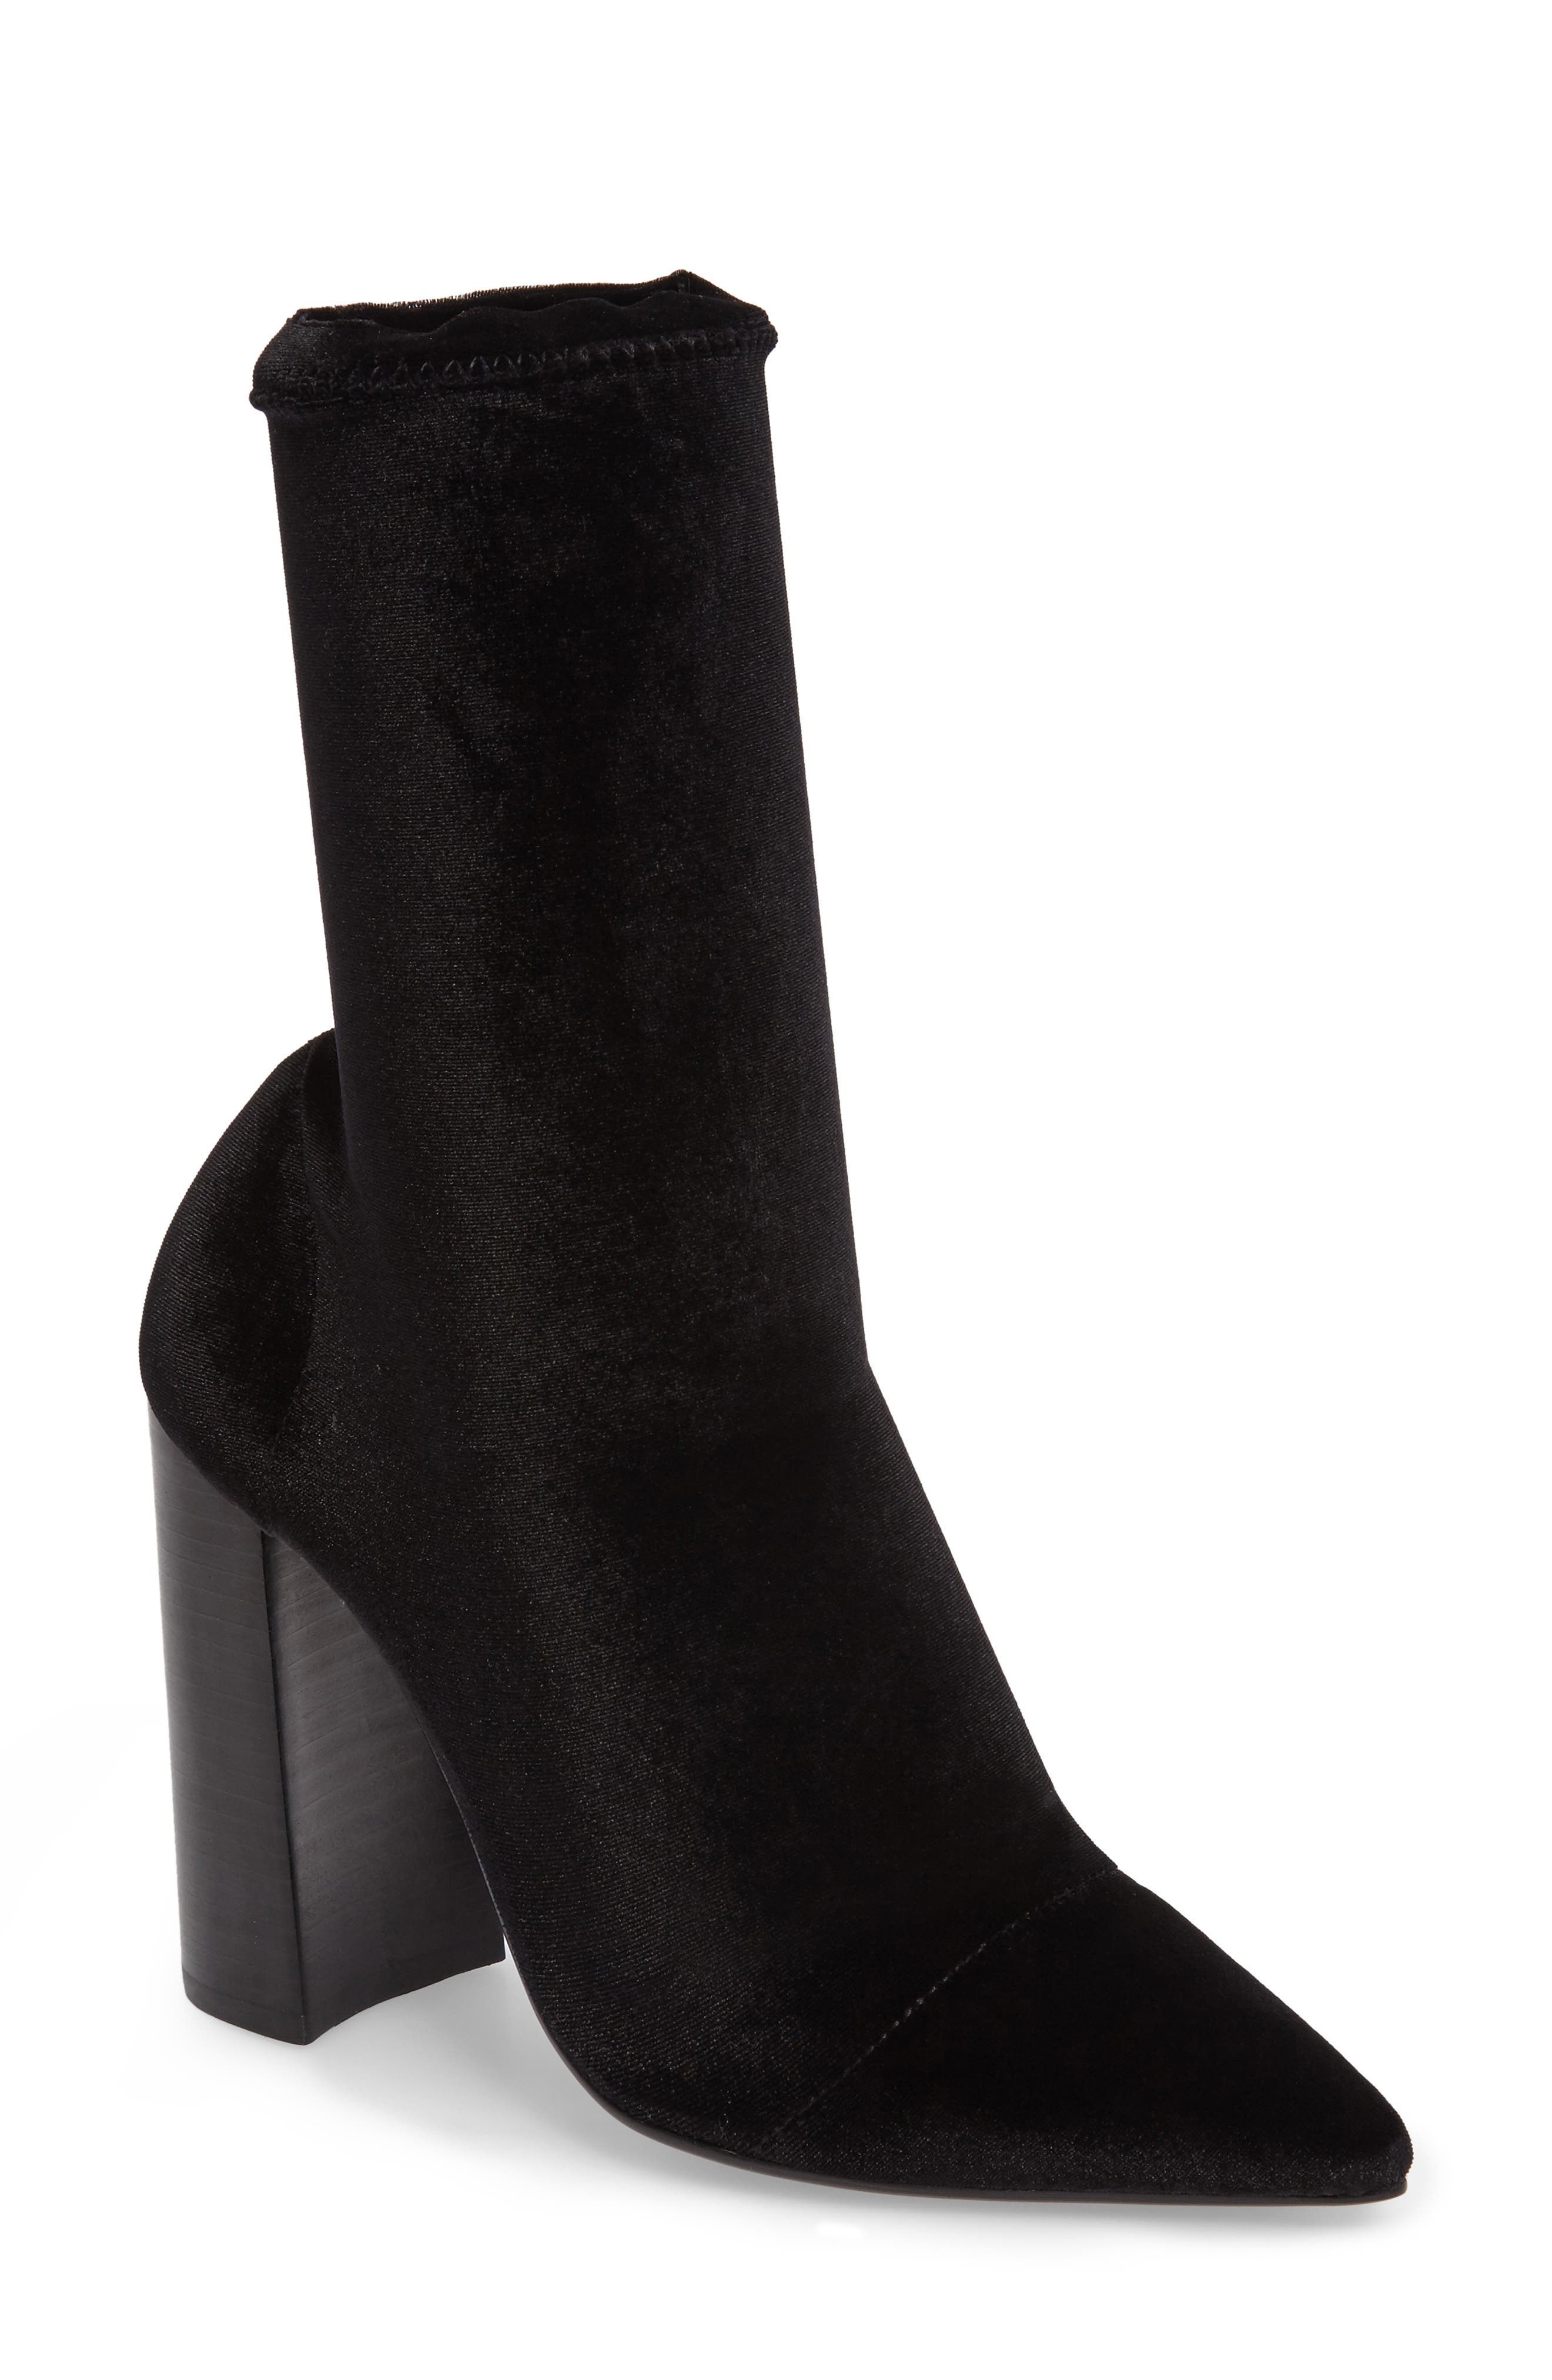 Diddy Velvet Bootie,                             Main thumbnail 1, color,                             BLACK FABRIC